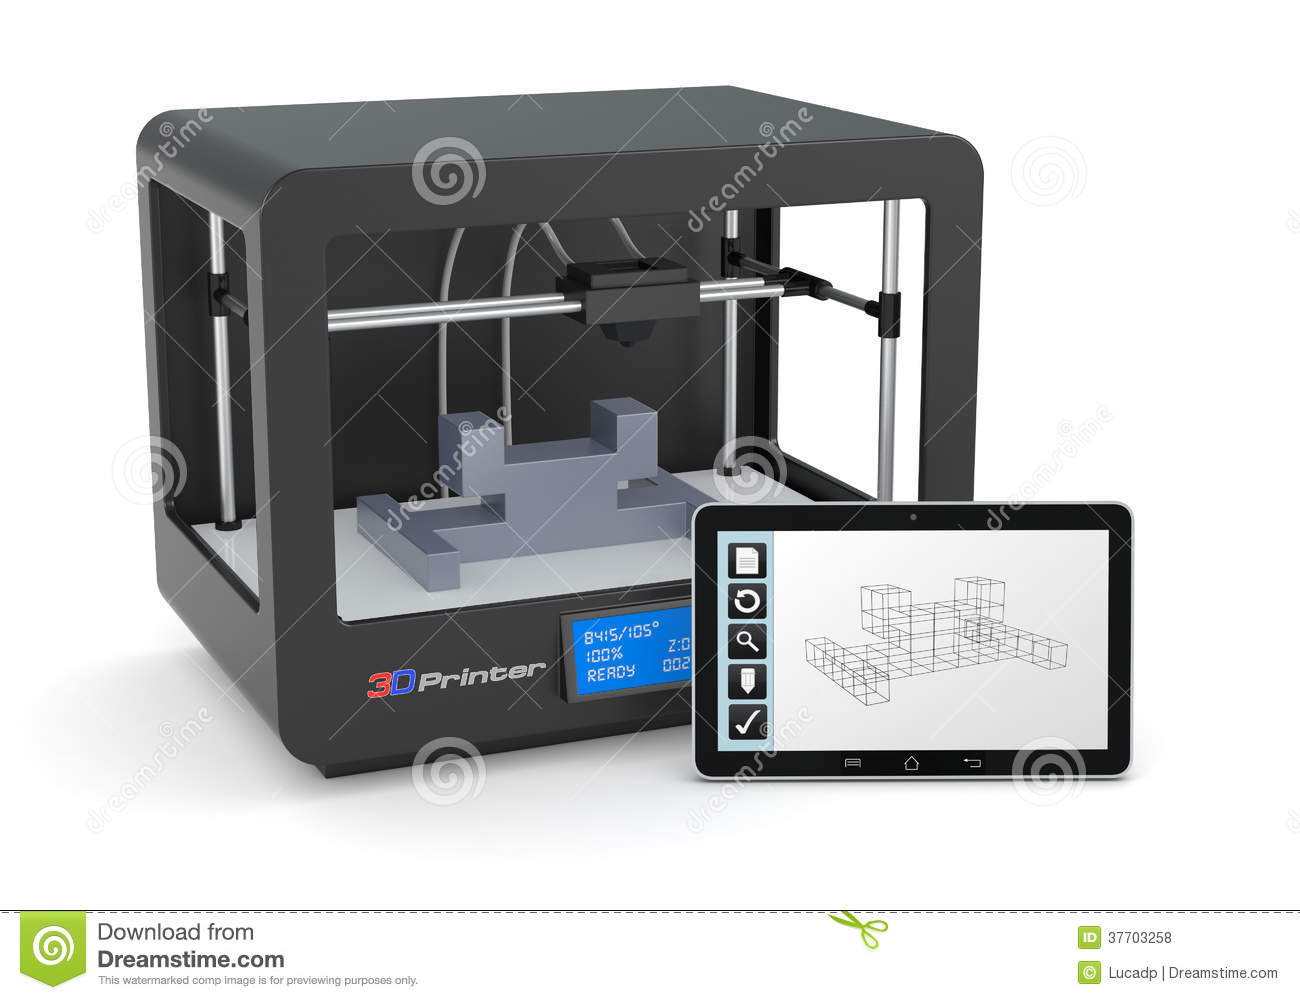 3d printing royalty free stock photos image 37703258 Free cad software for 3d printing